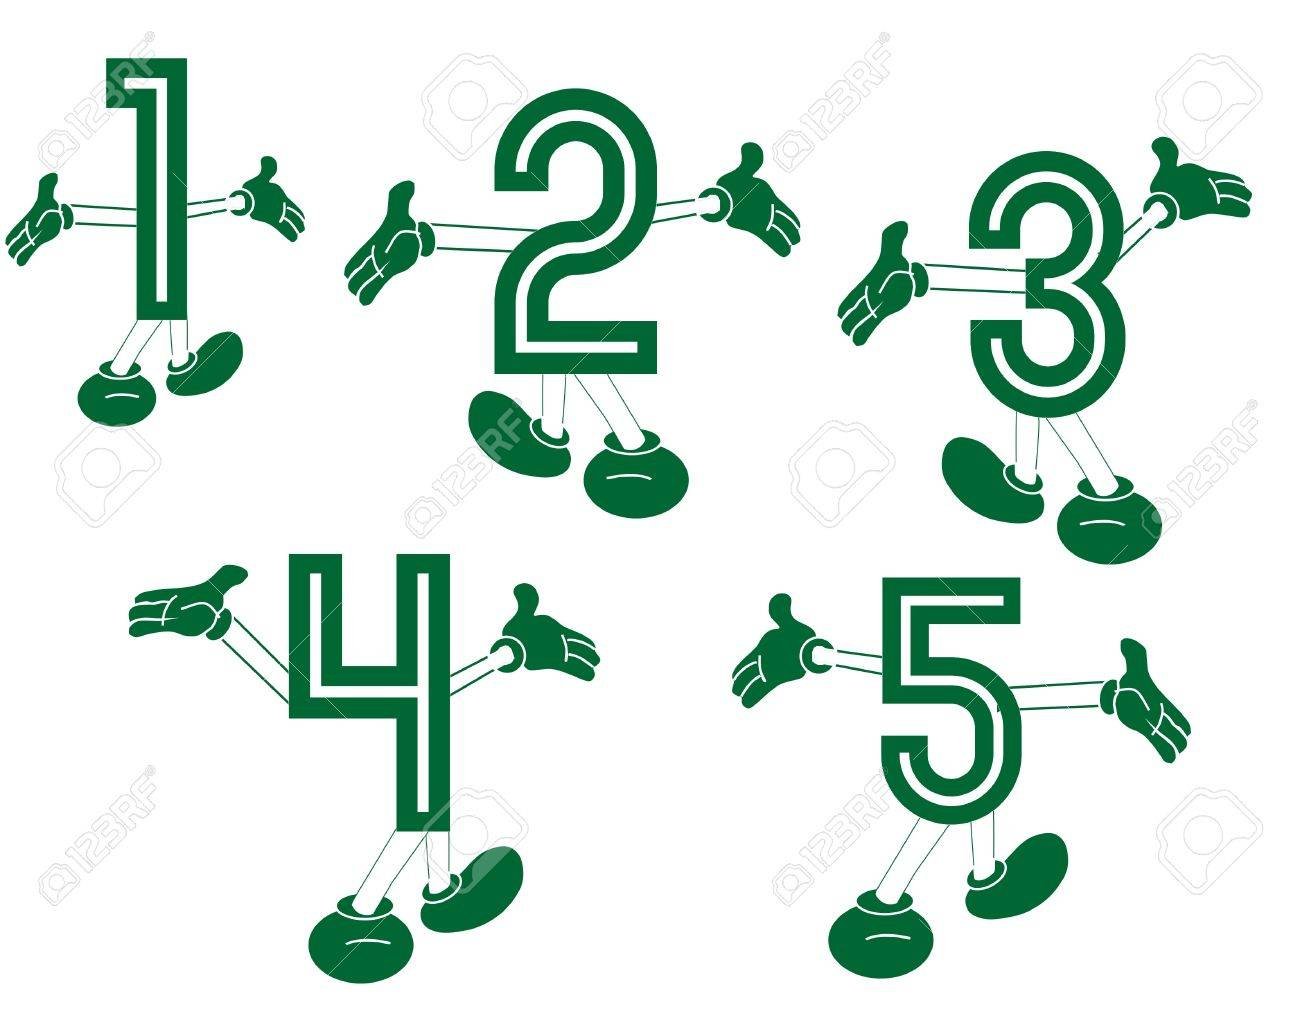 Primary numbers made for fun   Fun with numbers  Primary numbers, dancing and playing around, to excite the learning of them In a  two series set Stock Vector - 12822375